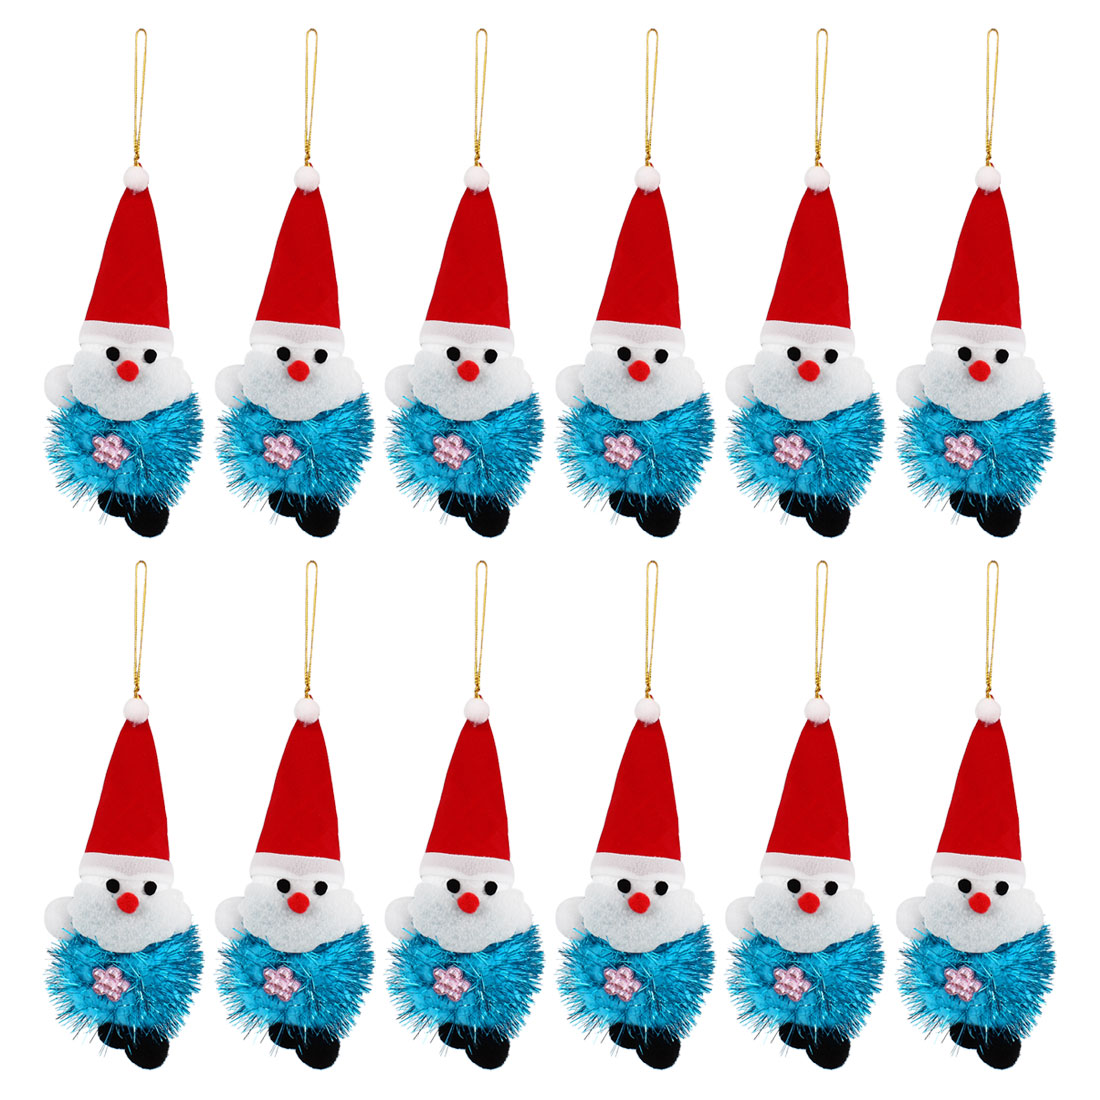 Red Pointed Cap Detail Xmas Santa Claus Pendant Blue 12pcs for Door Christmas Tree Hanging Decor